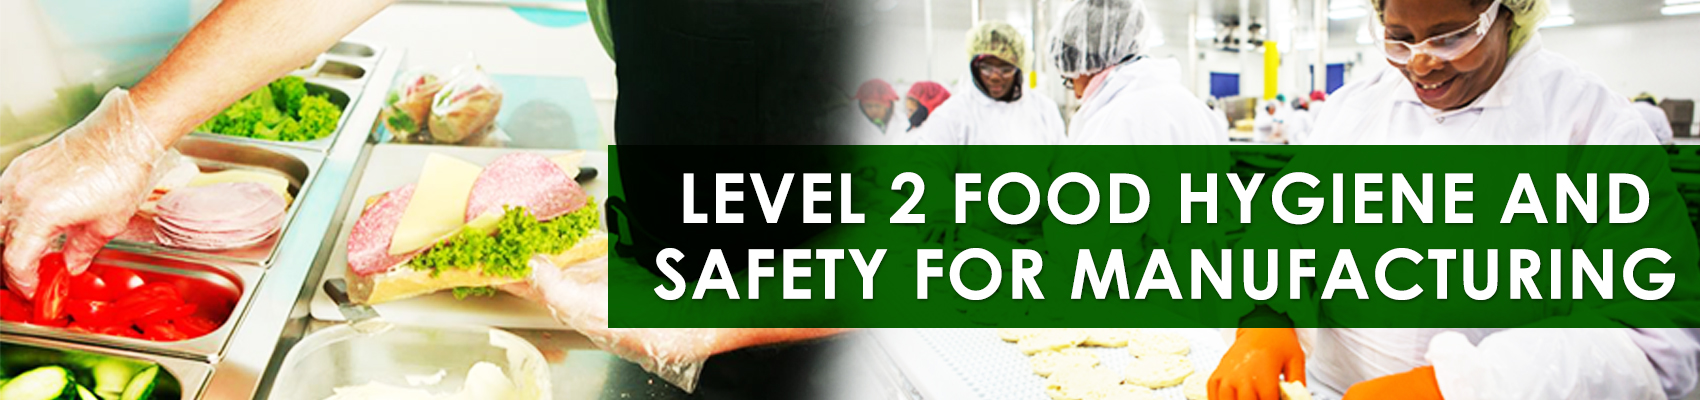 Level 2 Food Hygiene And Safety For Manufacturing Green